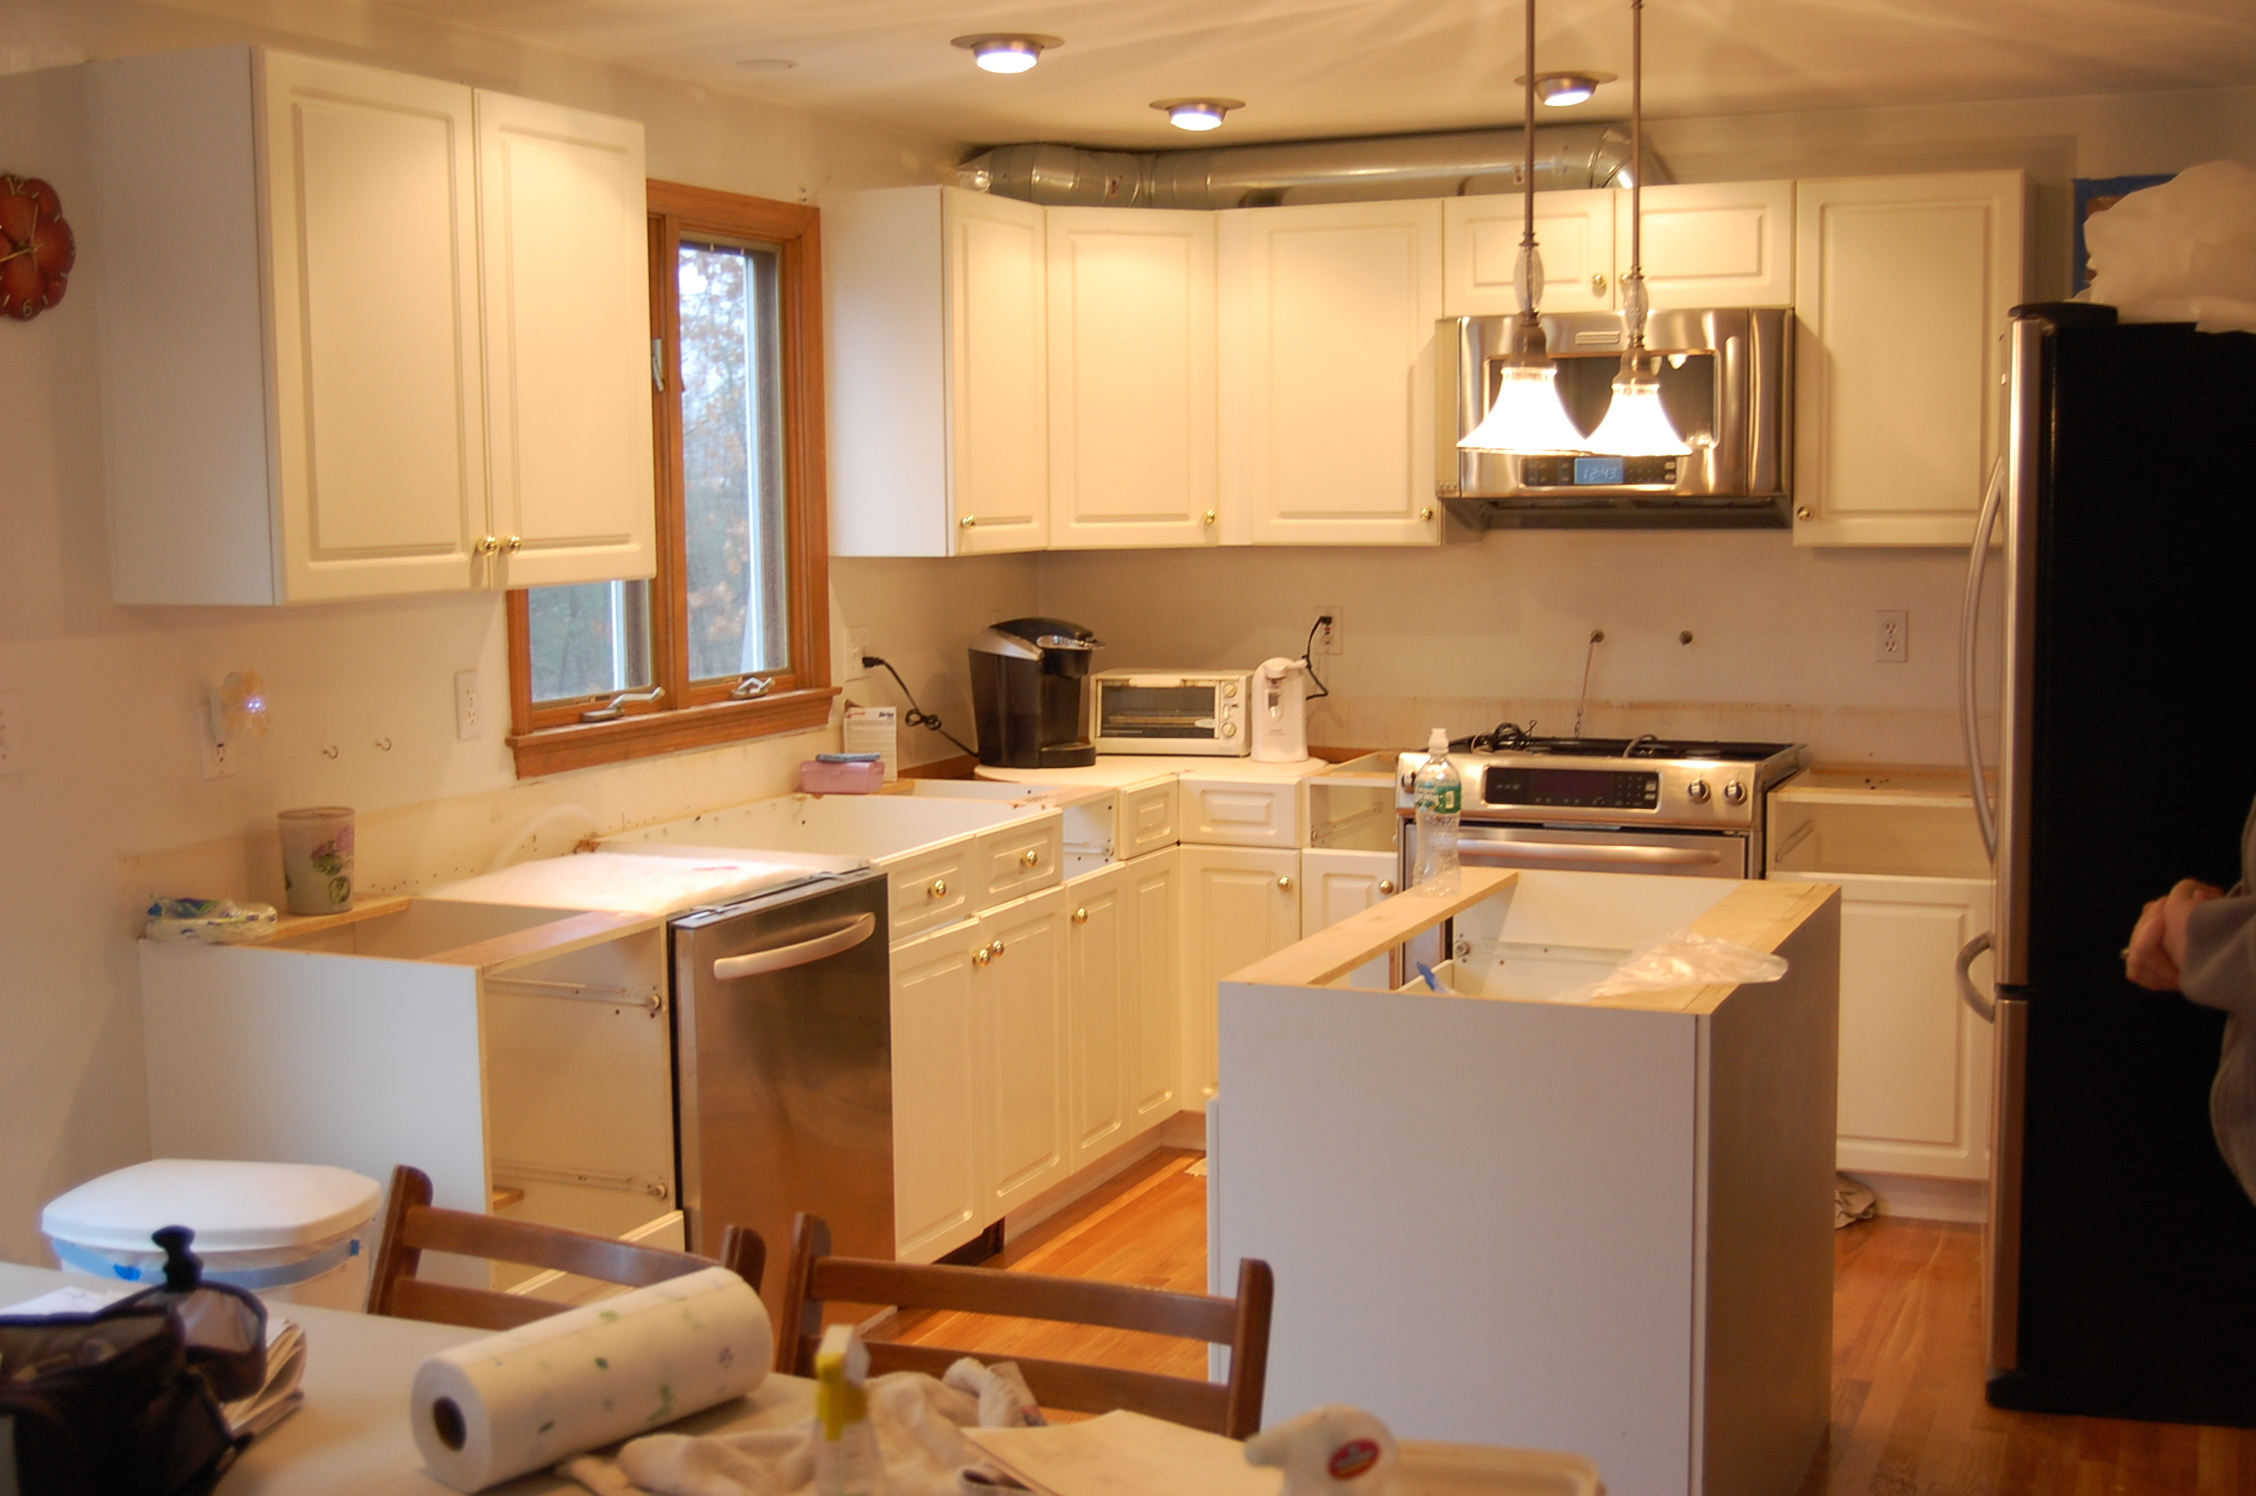 More Before and After Cabinet Refacing Photos 3 refacing kitchen cabinets A Classic KKitchen photo of a kitchen before refacing